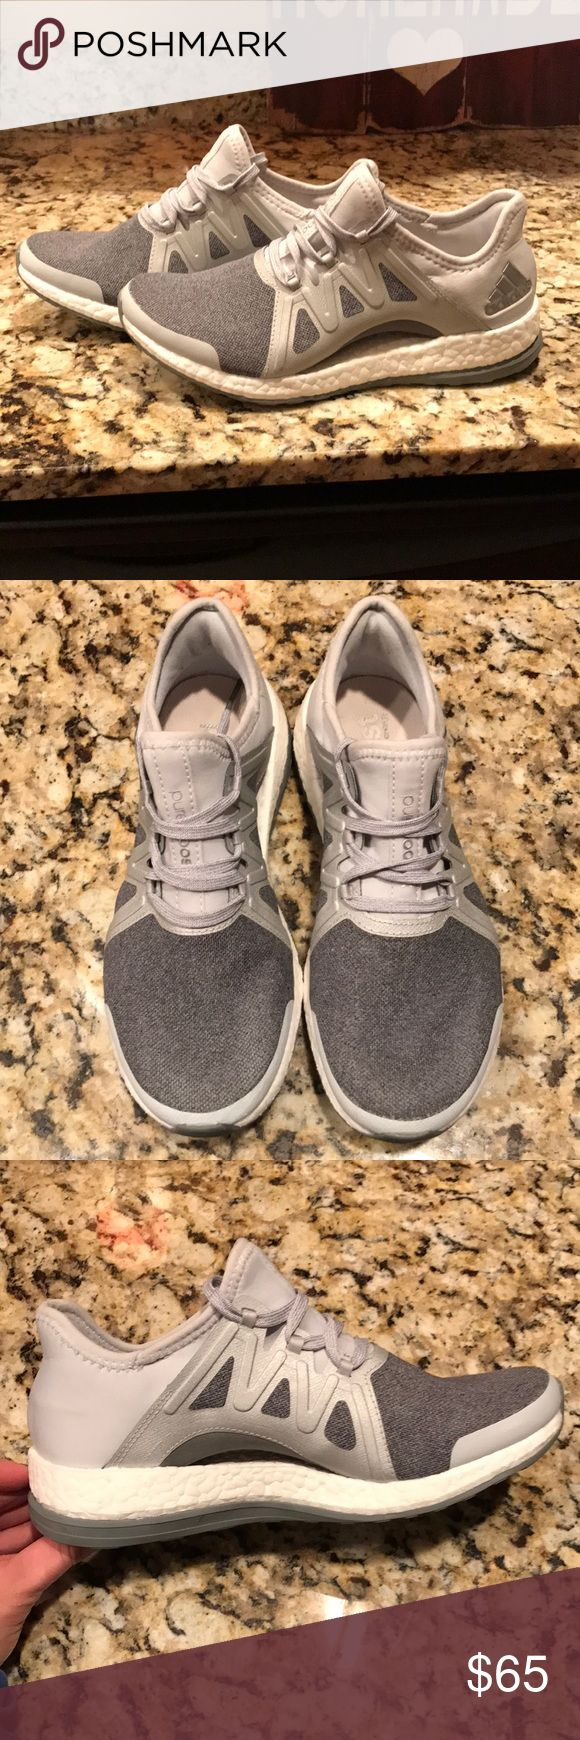 Womens adidas pure boost xpose Only worn twice to the gym. Good condition. Size 6. Grey/Silver/White. Comfortable shoe. adidas Shoes Athletic Shoes